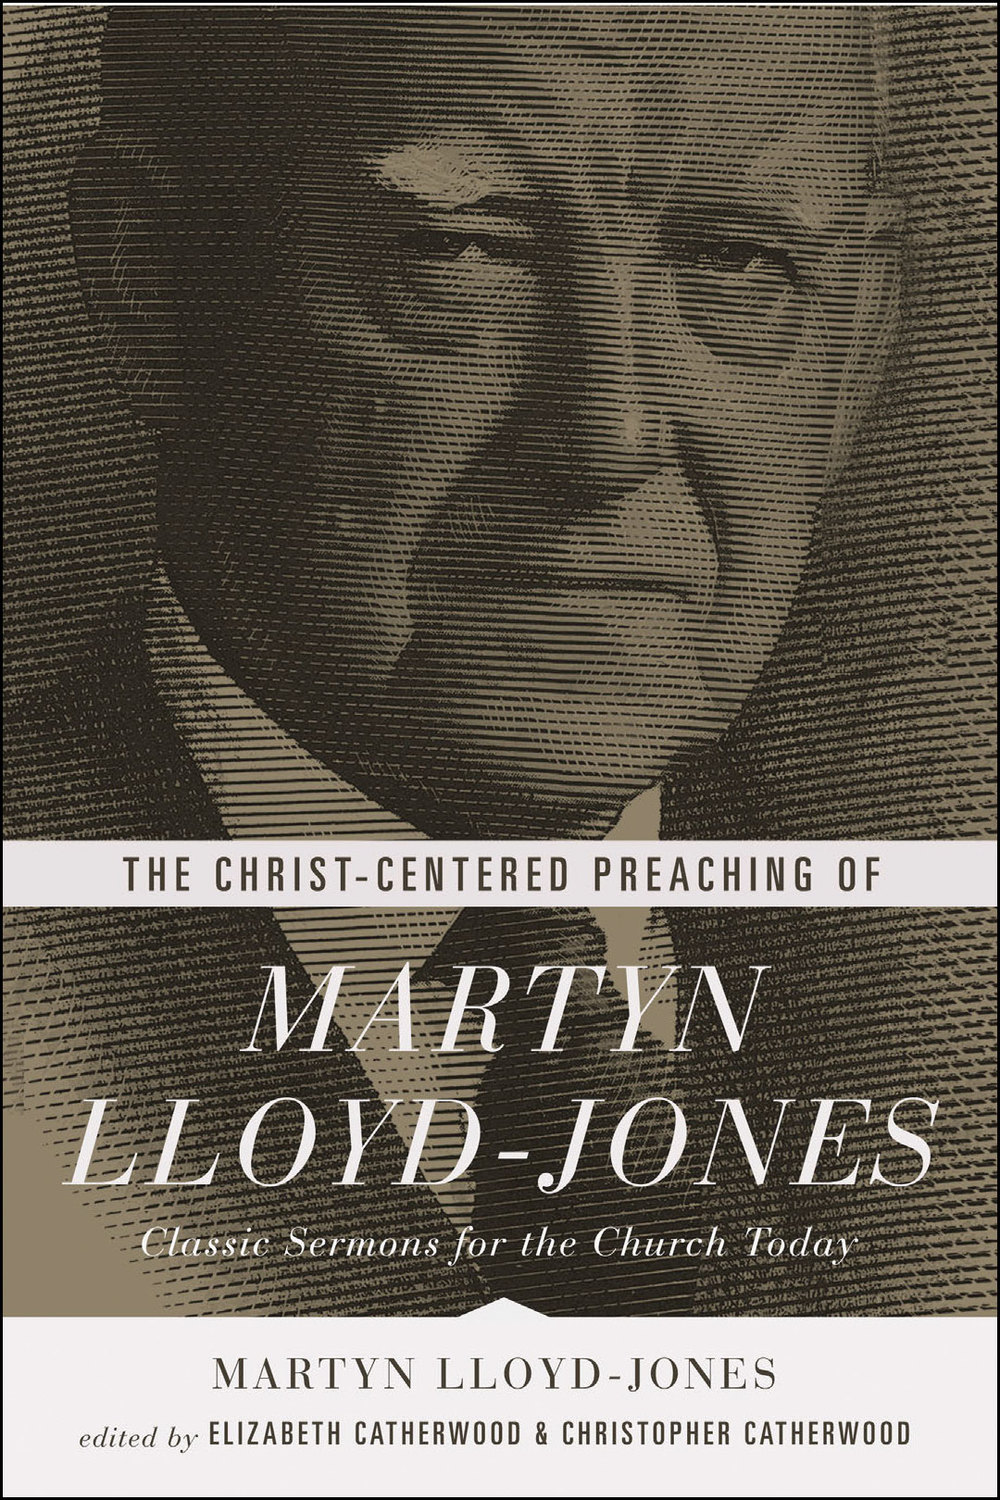 The Christ-Centered Preaching of Martyn Lloyd-Jones